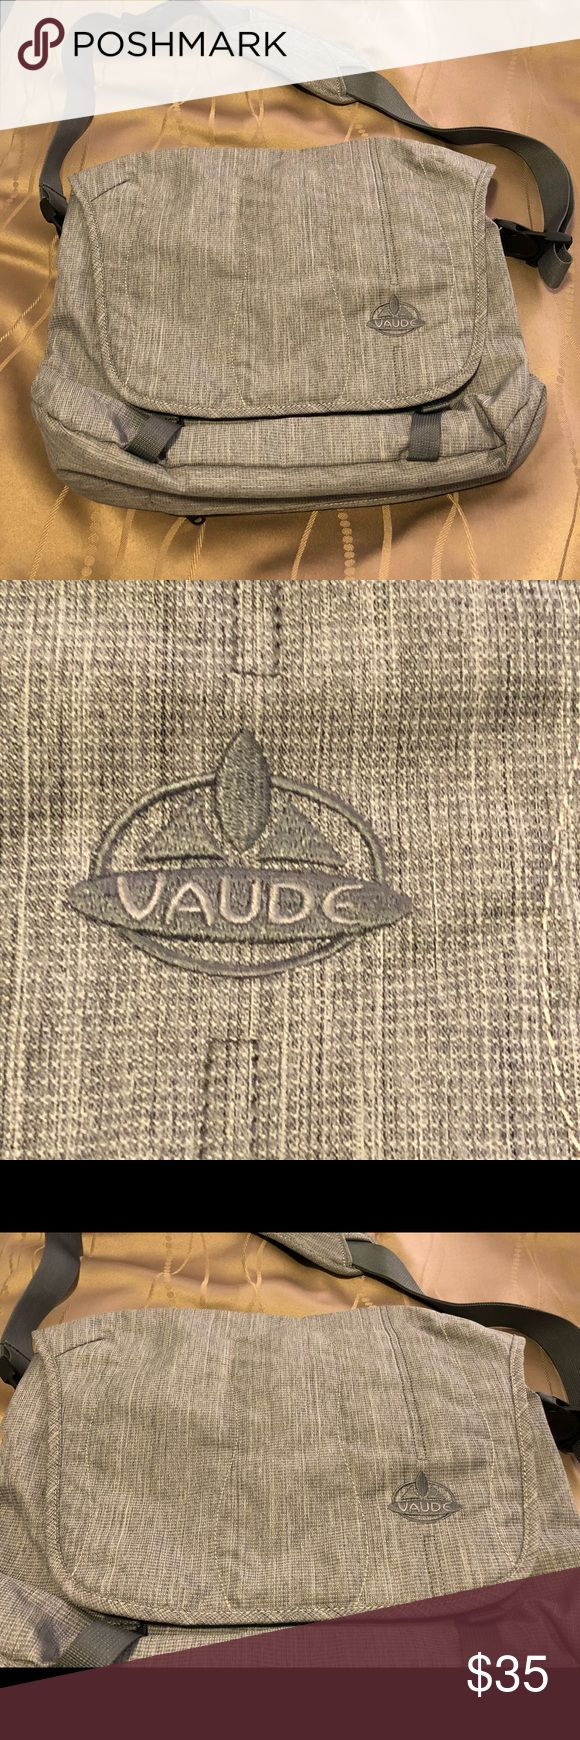 """Vaude Messenger/Laptop Bag Gray Vaude Messenger/Laptop Bag.  Durable fabric, with gray outside stitching, clean, and in great condition inside and out.  Mesh pockets inside.  Zippered pockets under front closure, back and bottom of bag.  Black durable hardware, and adjustable shoulder strap, in good condition.  Width 15"""" Length 11"""" Vaude Bags Messenger Bags"""